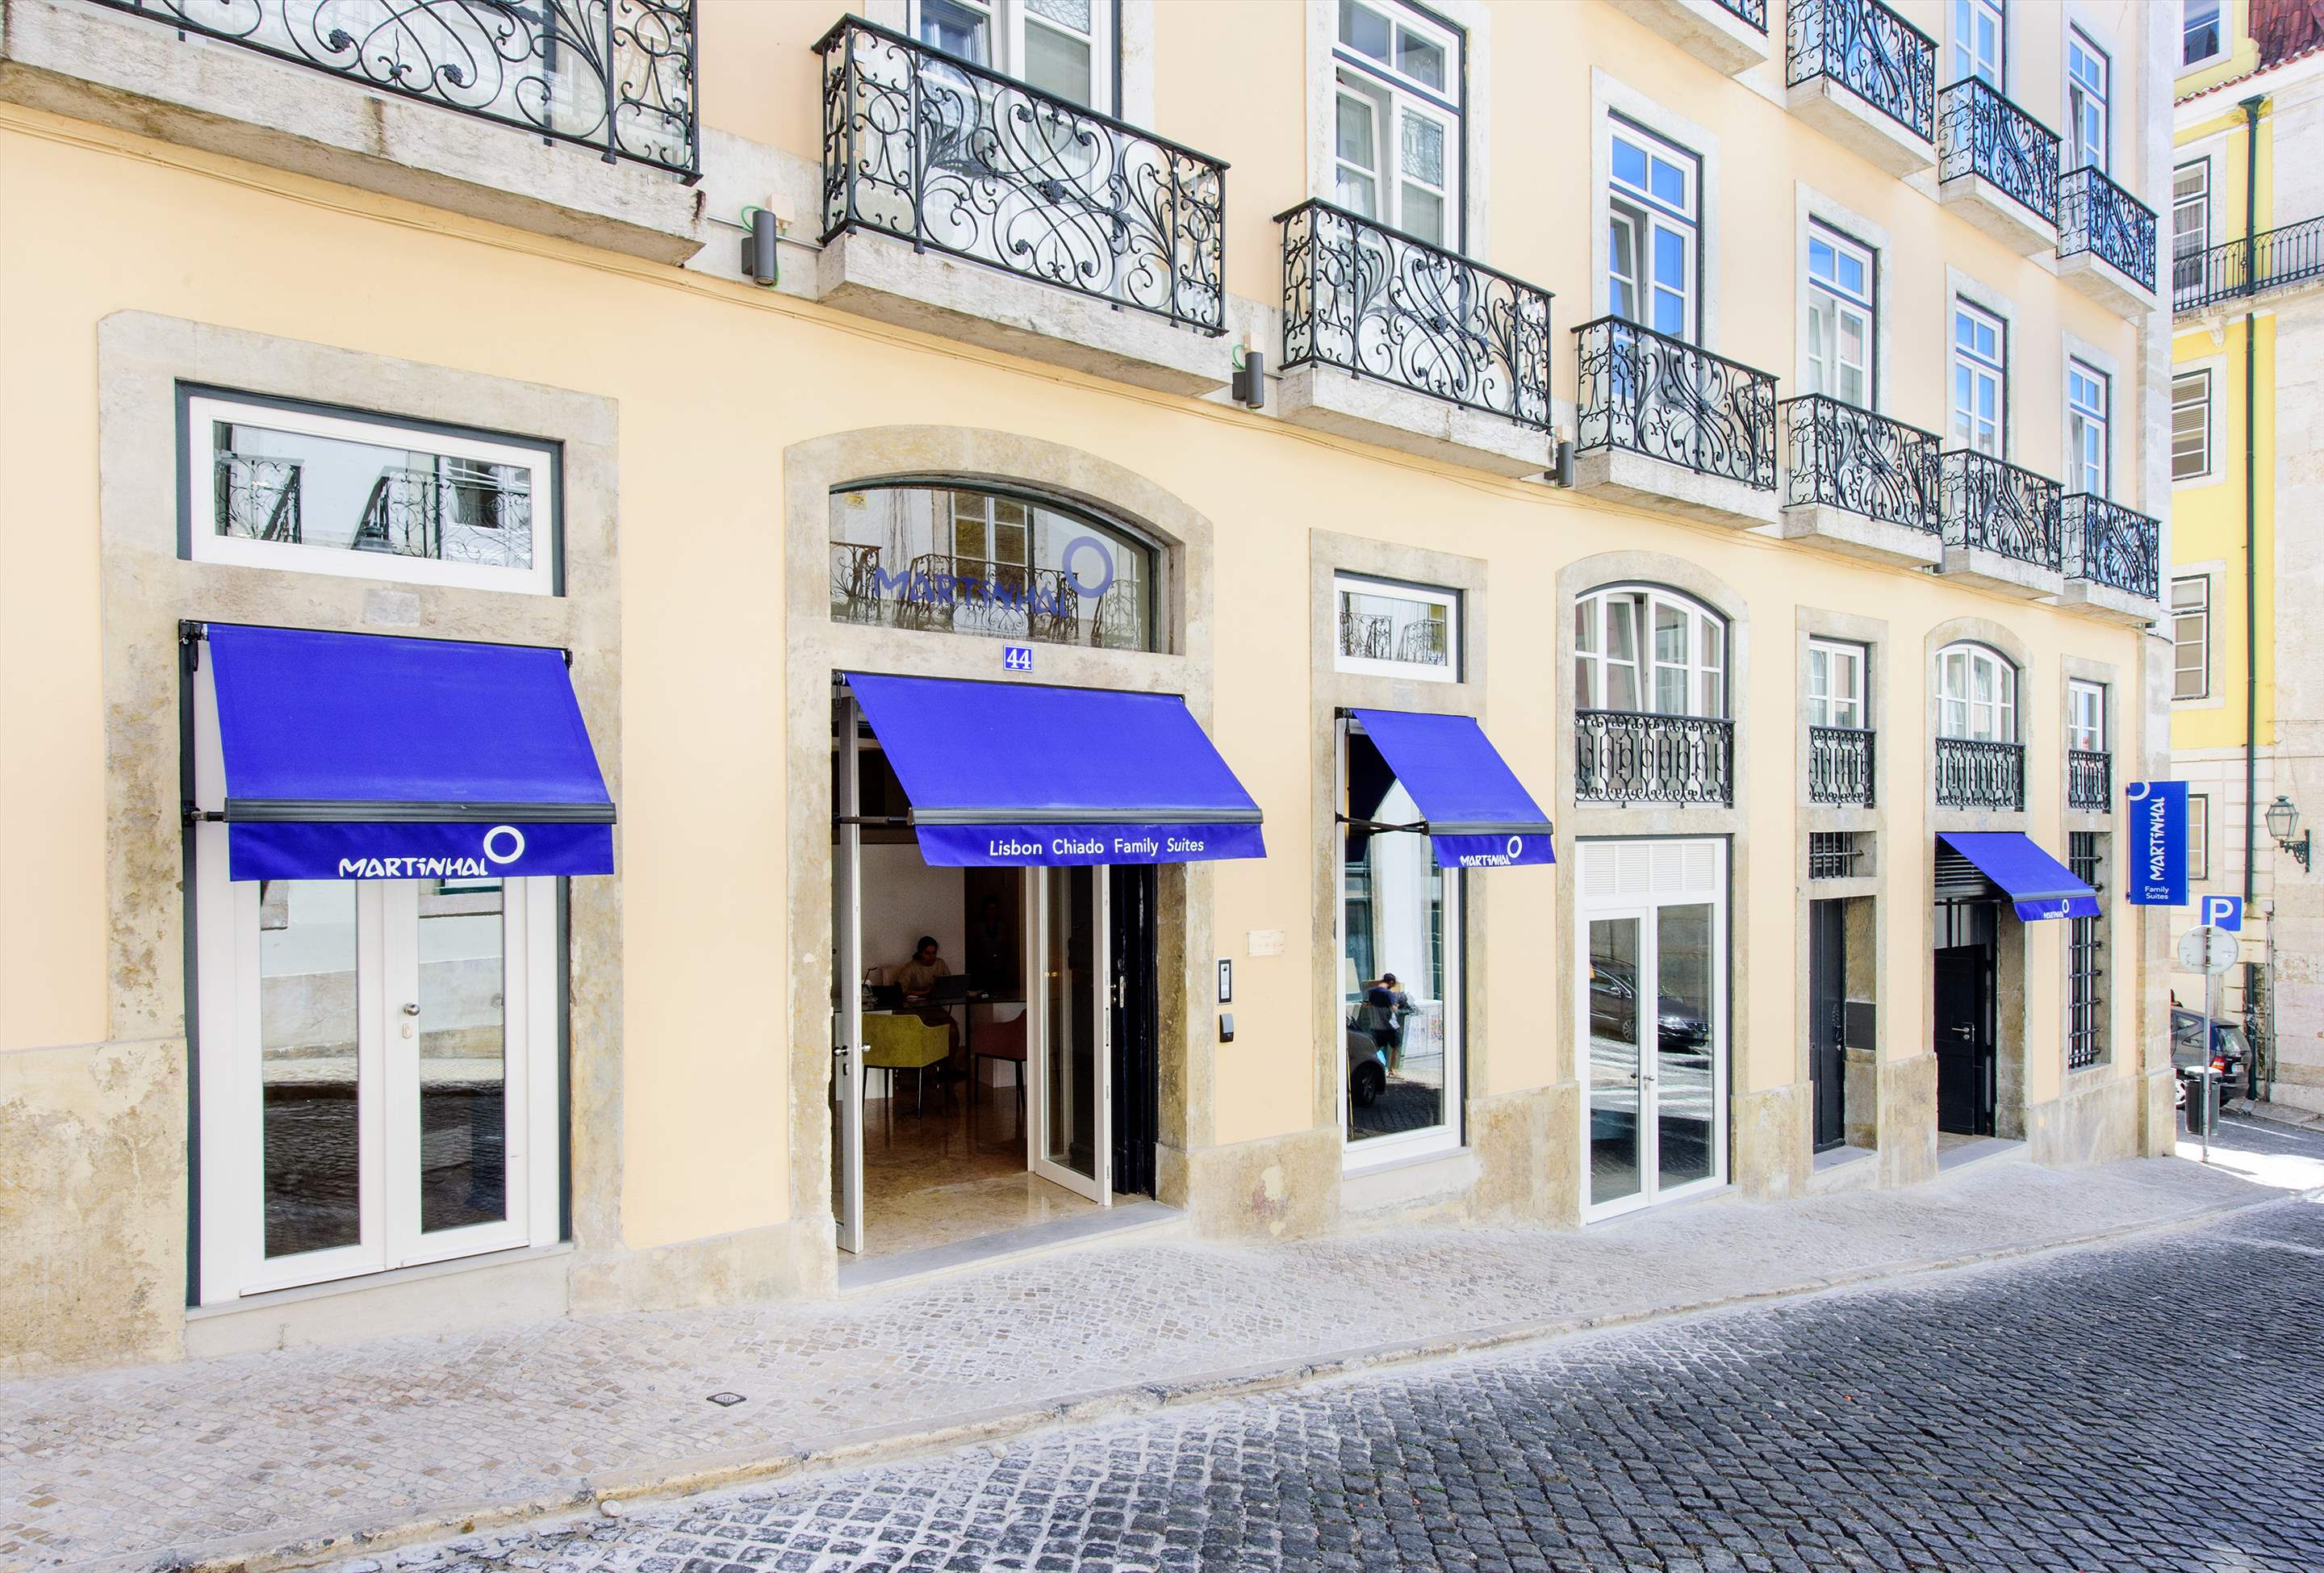 Martinhal Chiado Family Suites, Deluxe Apartment Two Bedroom with bunkbed, 2 bedroom apartment in Lisbon Coast, Lisbon Photo #9